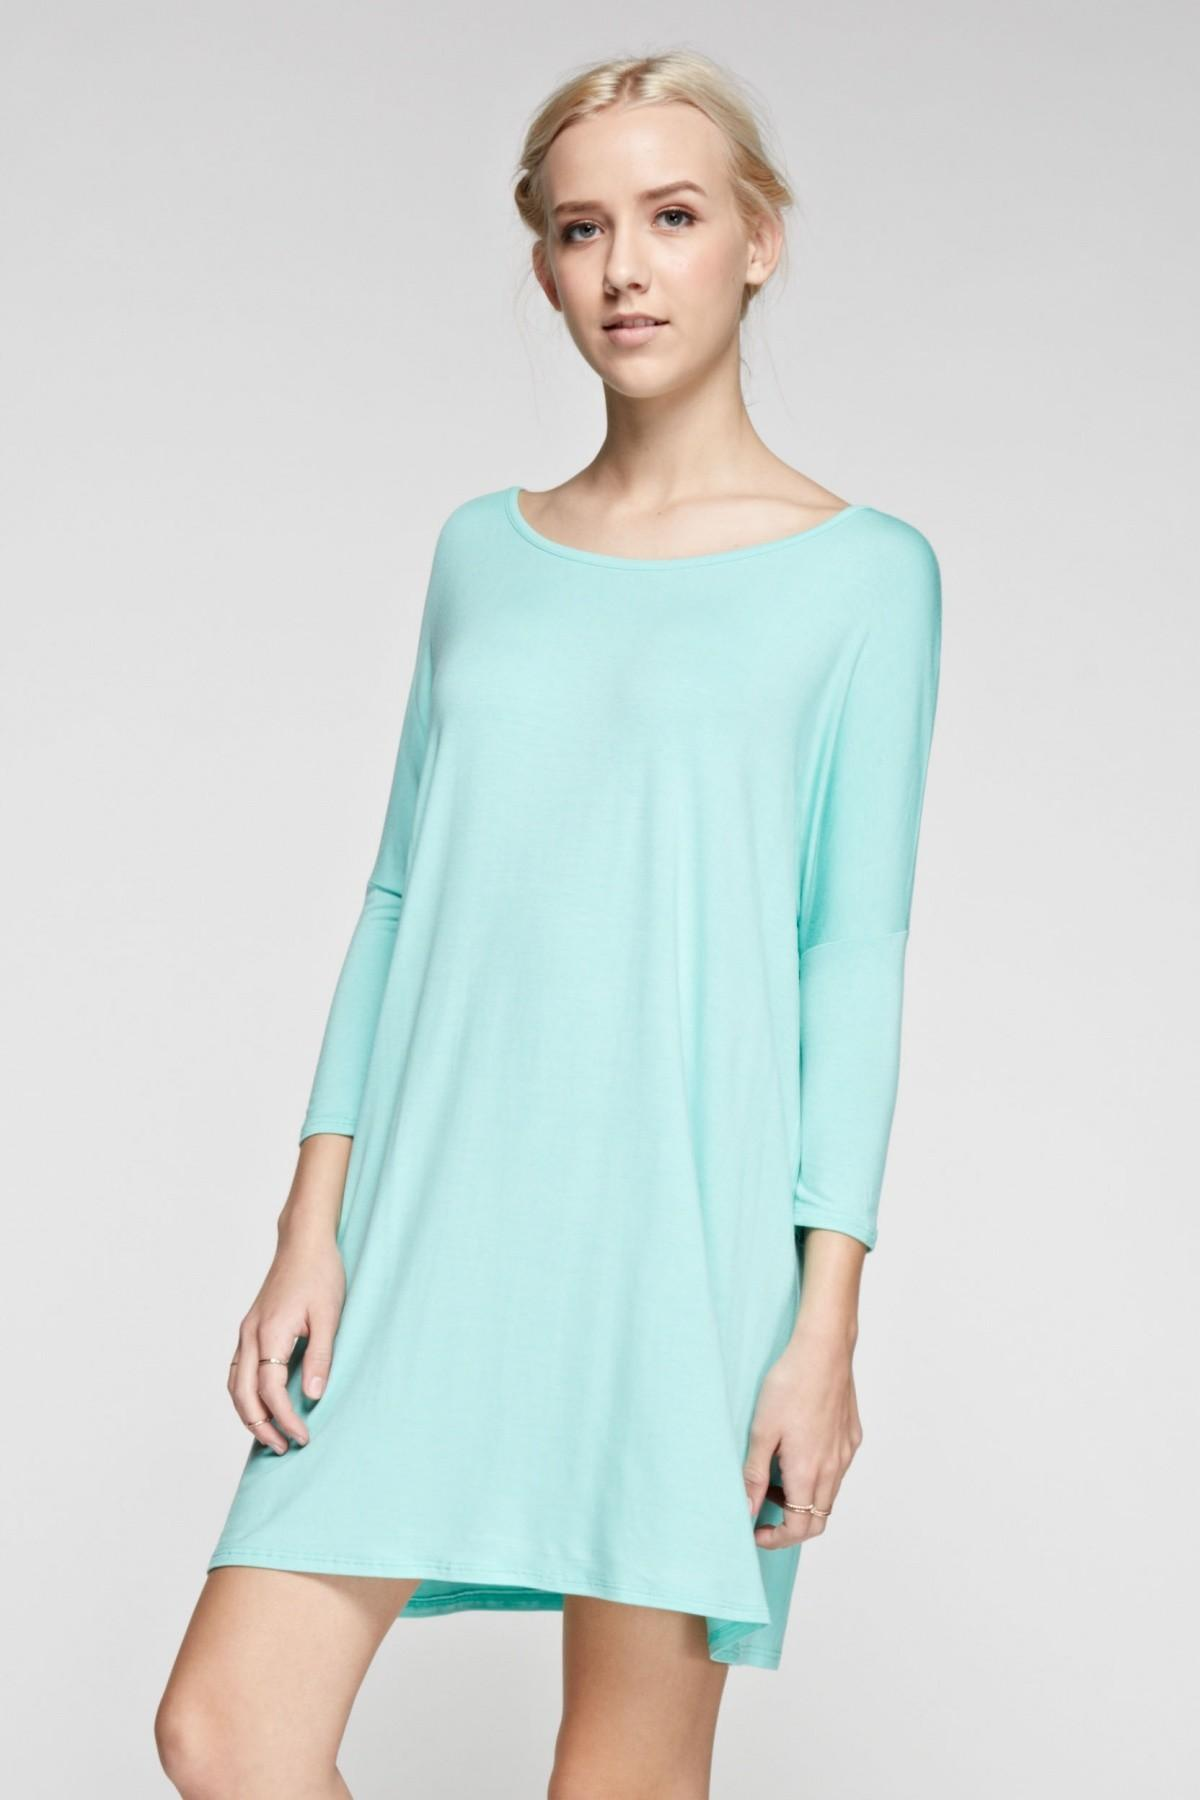 Groopdealz Spring Easy Tee Dress Colors